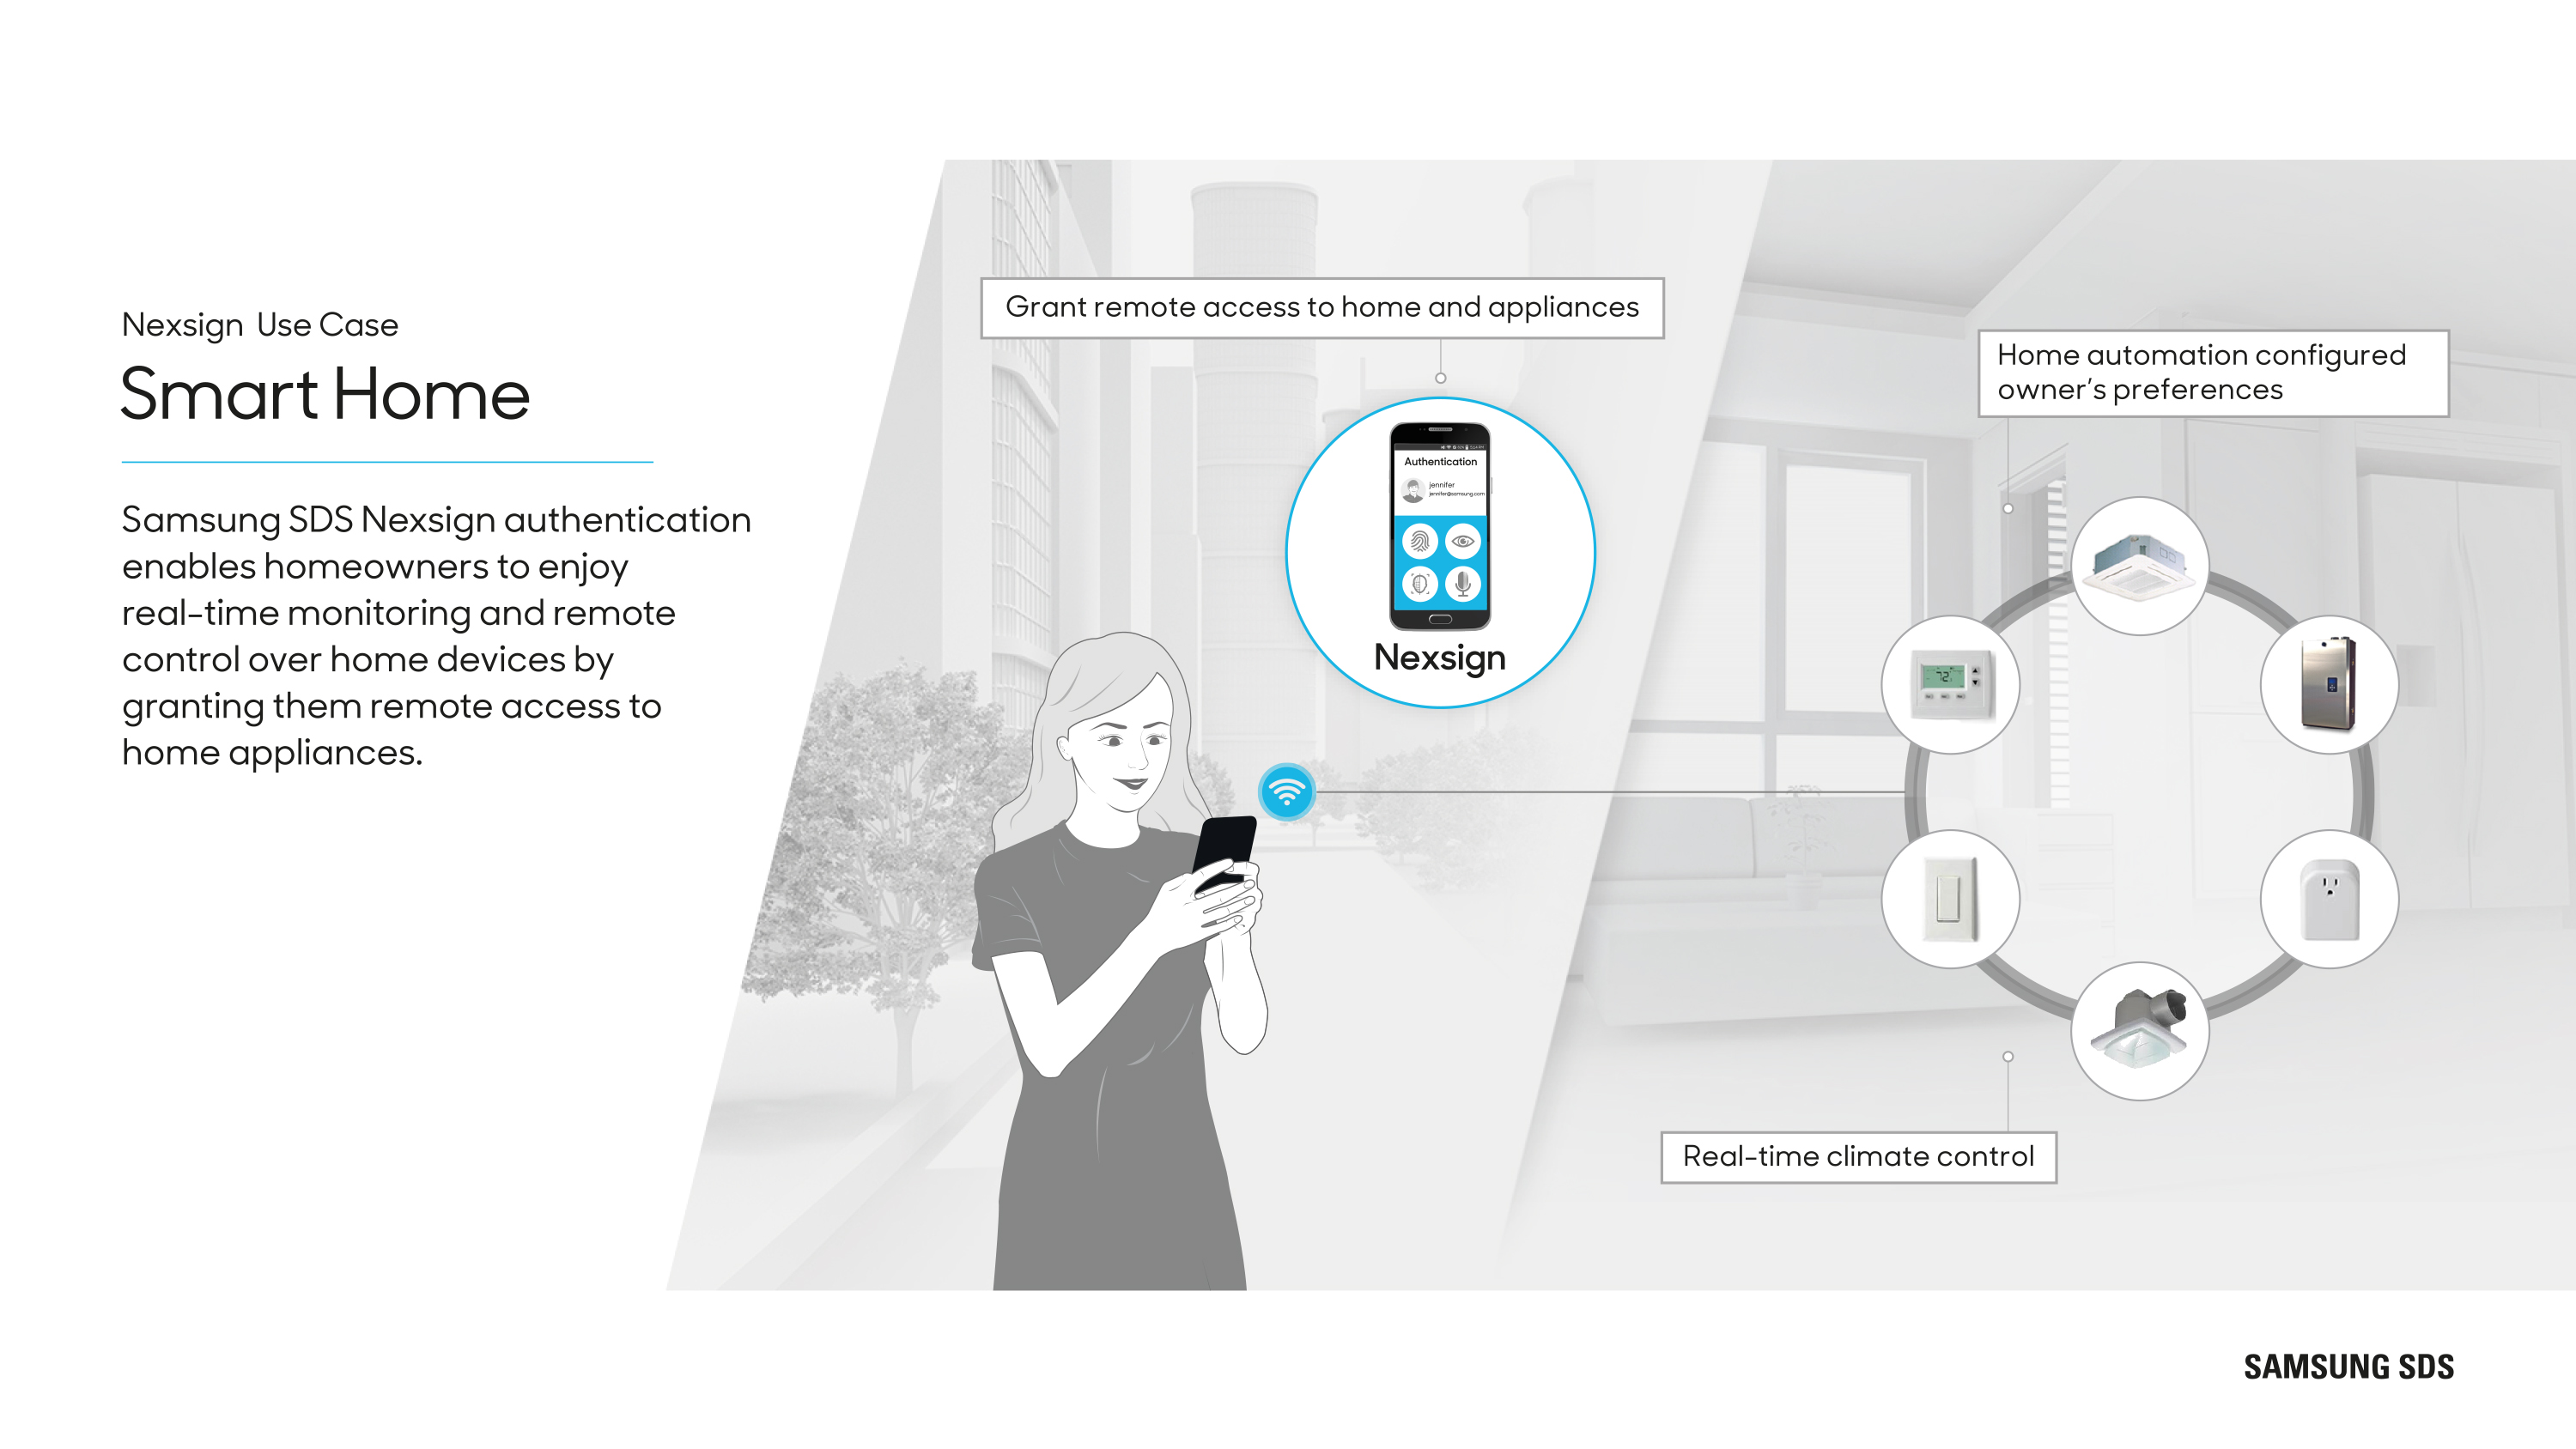 Smarter homes with remote access